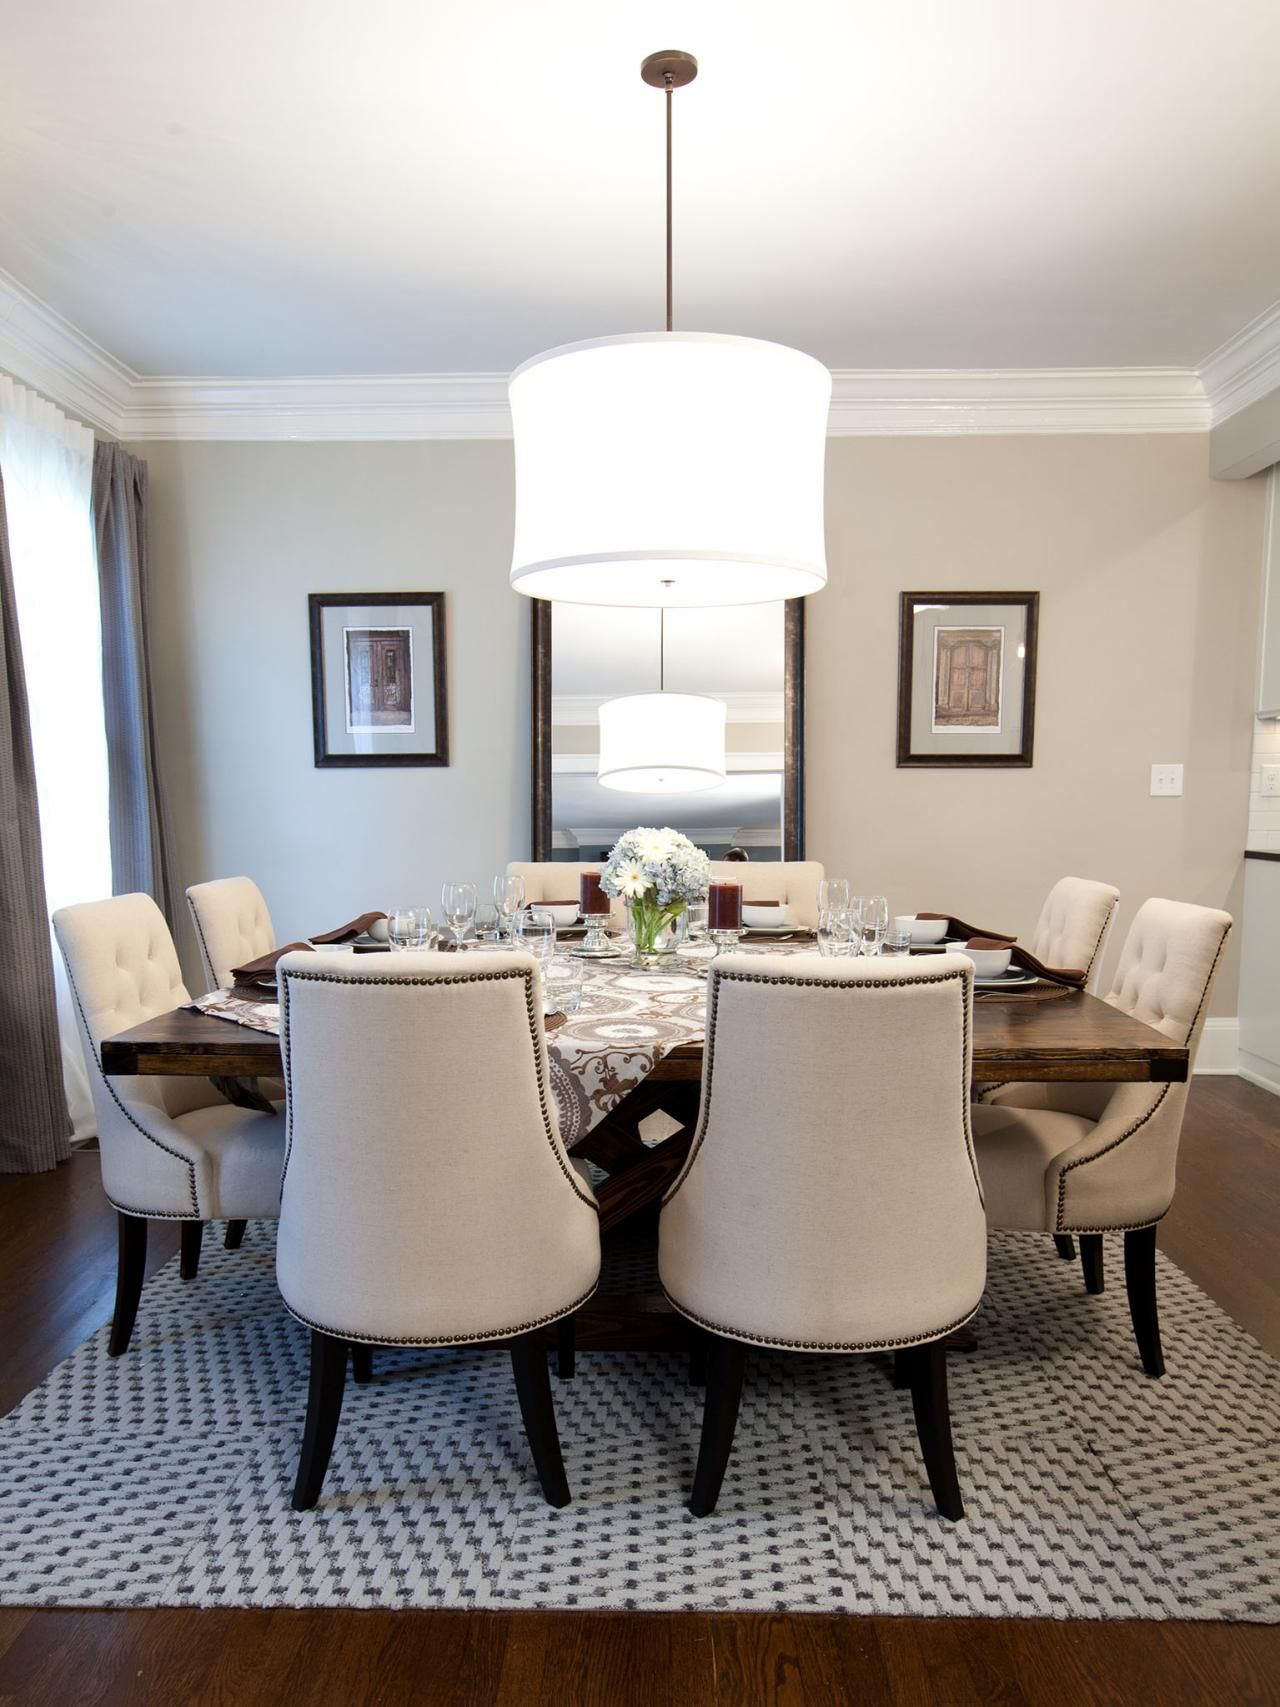 An Over Sized Fabric Chandelier Centers The Room As It Hangs A Large Table With Studded Chairs